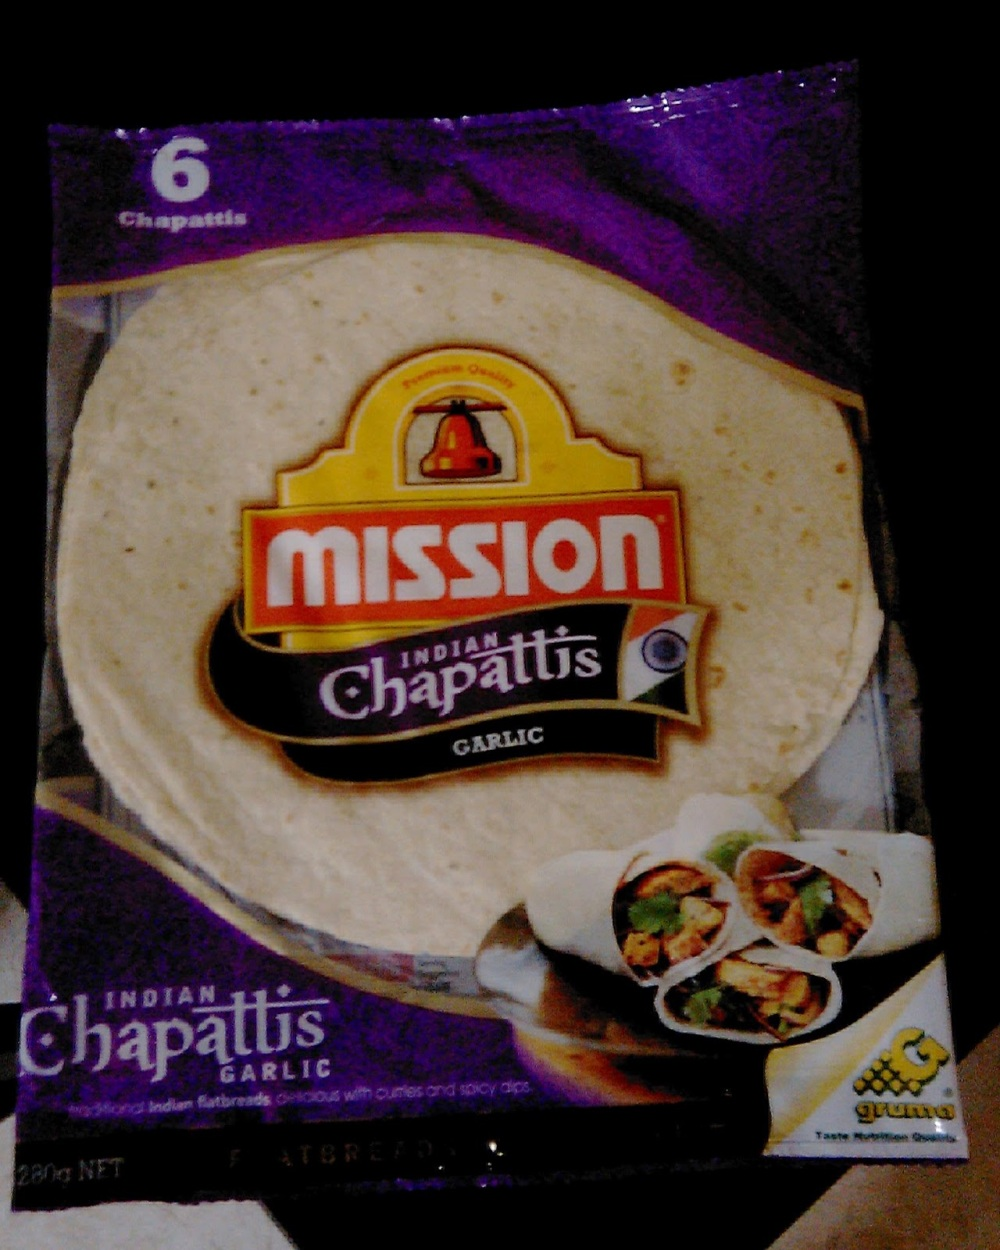 Garlic Chapattis by your favorite tortilla brand!